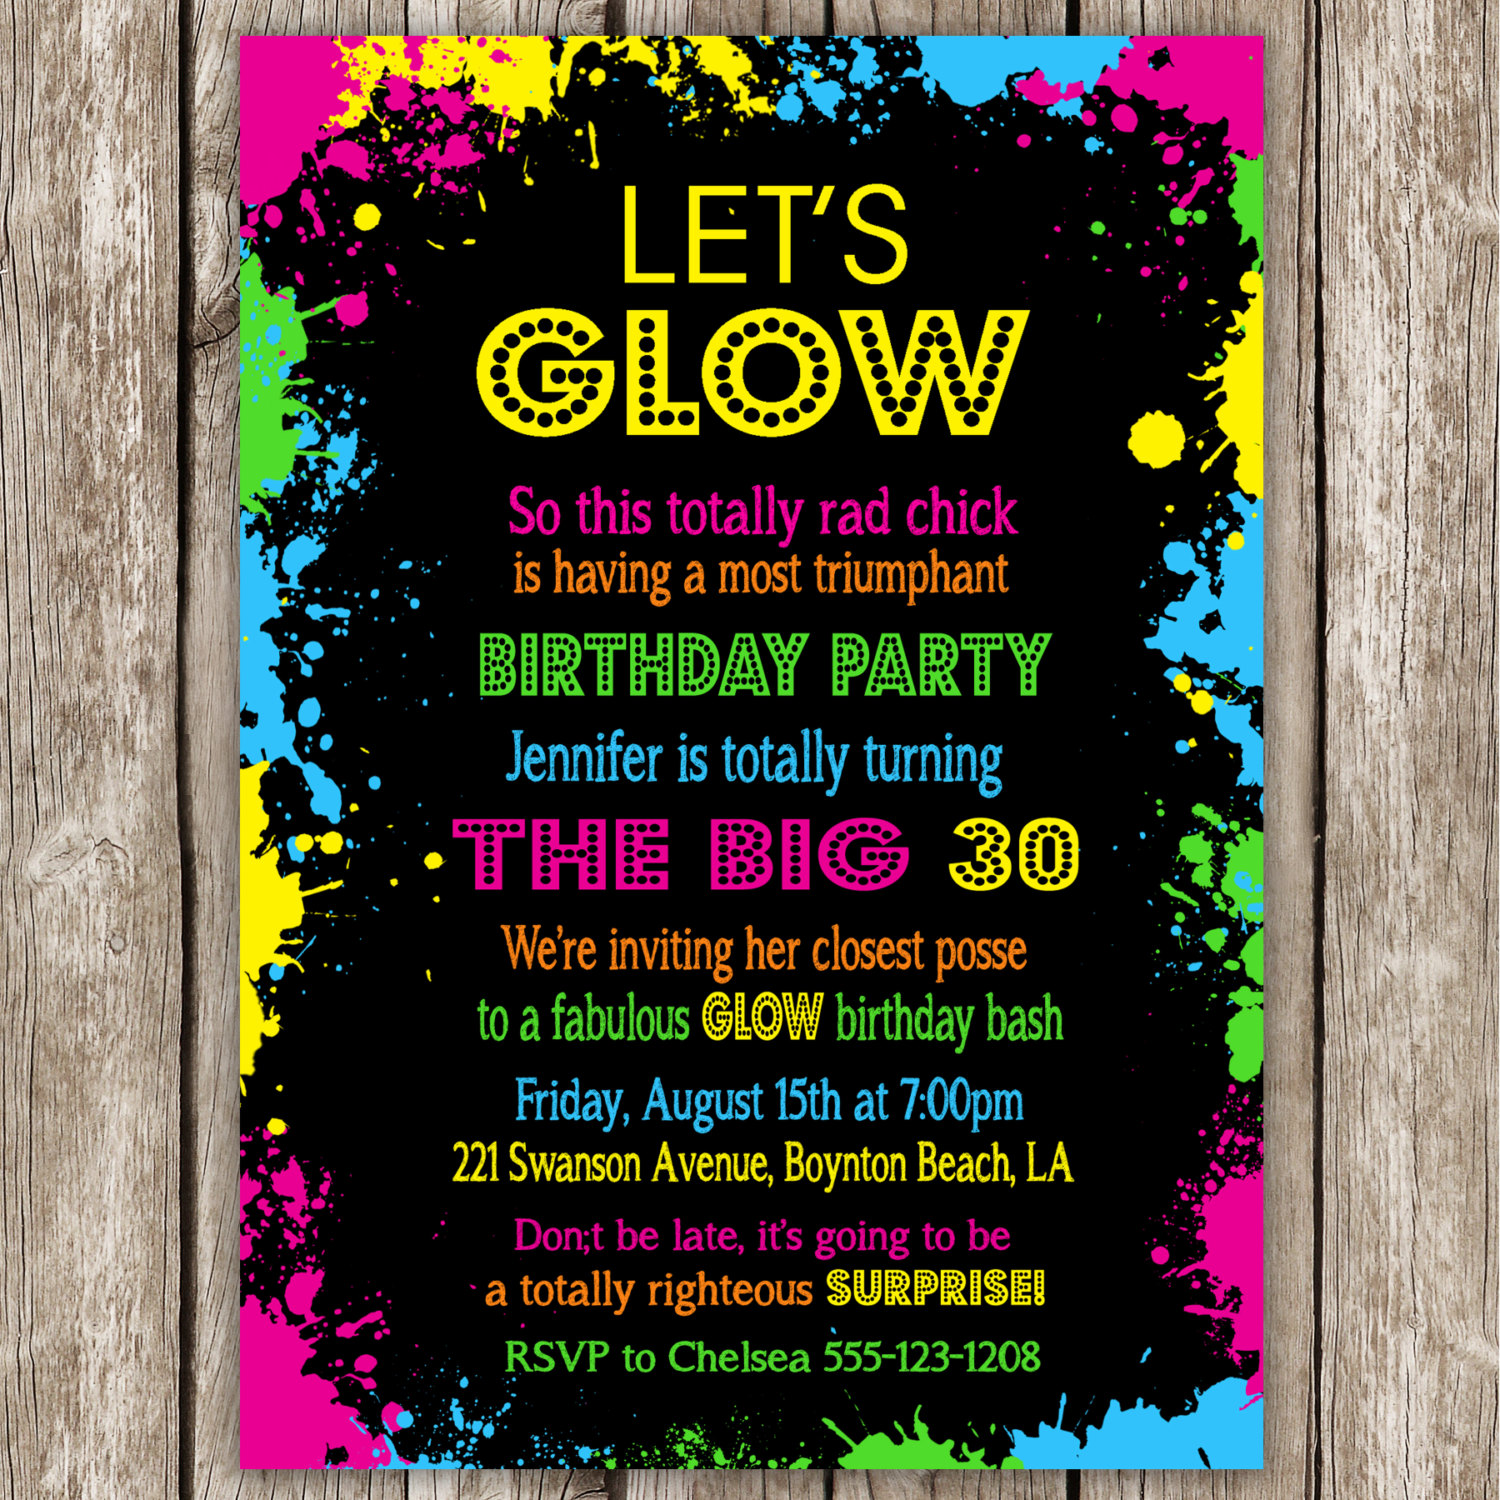 10th birthday party invitations ; 10Th-Birthday-Party-Invitation-Wording-and-get-inspired-to-create-your-own-birthday-Invitation-design-with-this-ideas-1